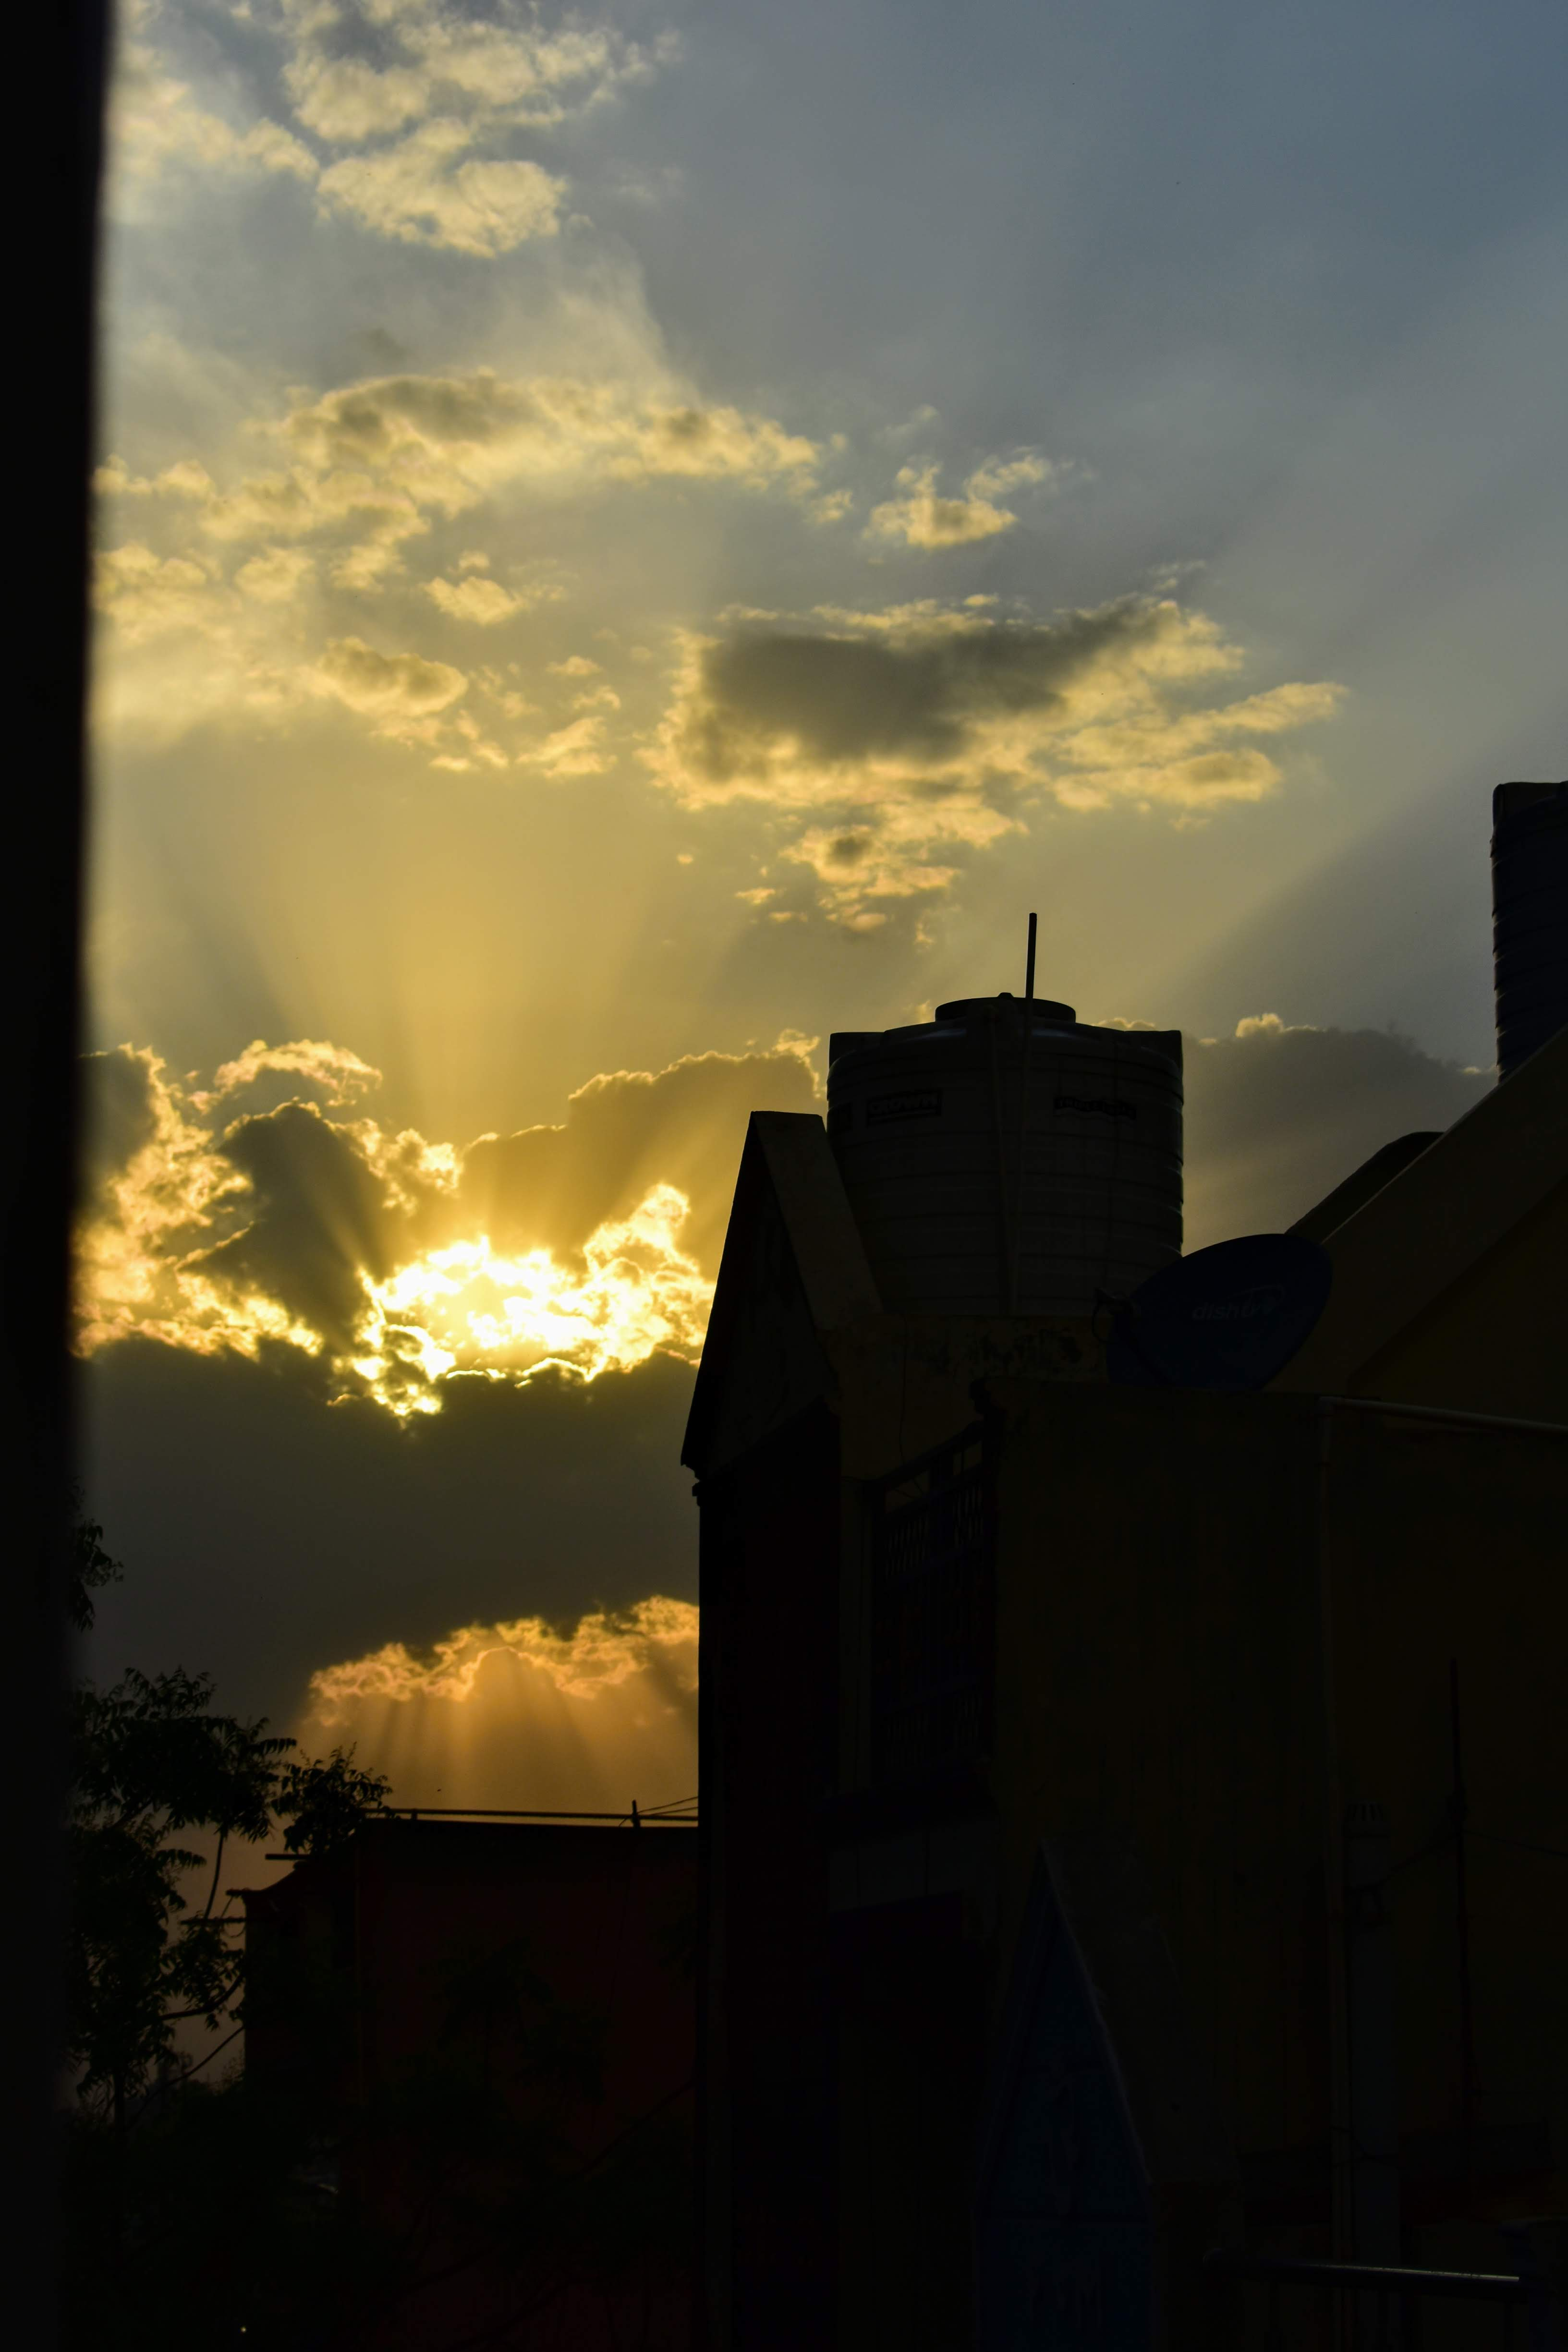 Aesthetic Blasphemy | Image of the sun's golden rays emerging from behind clouds on an evening